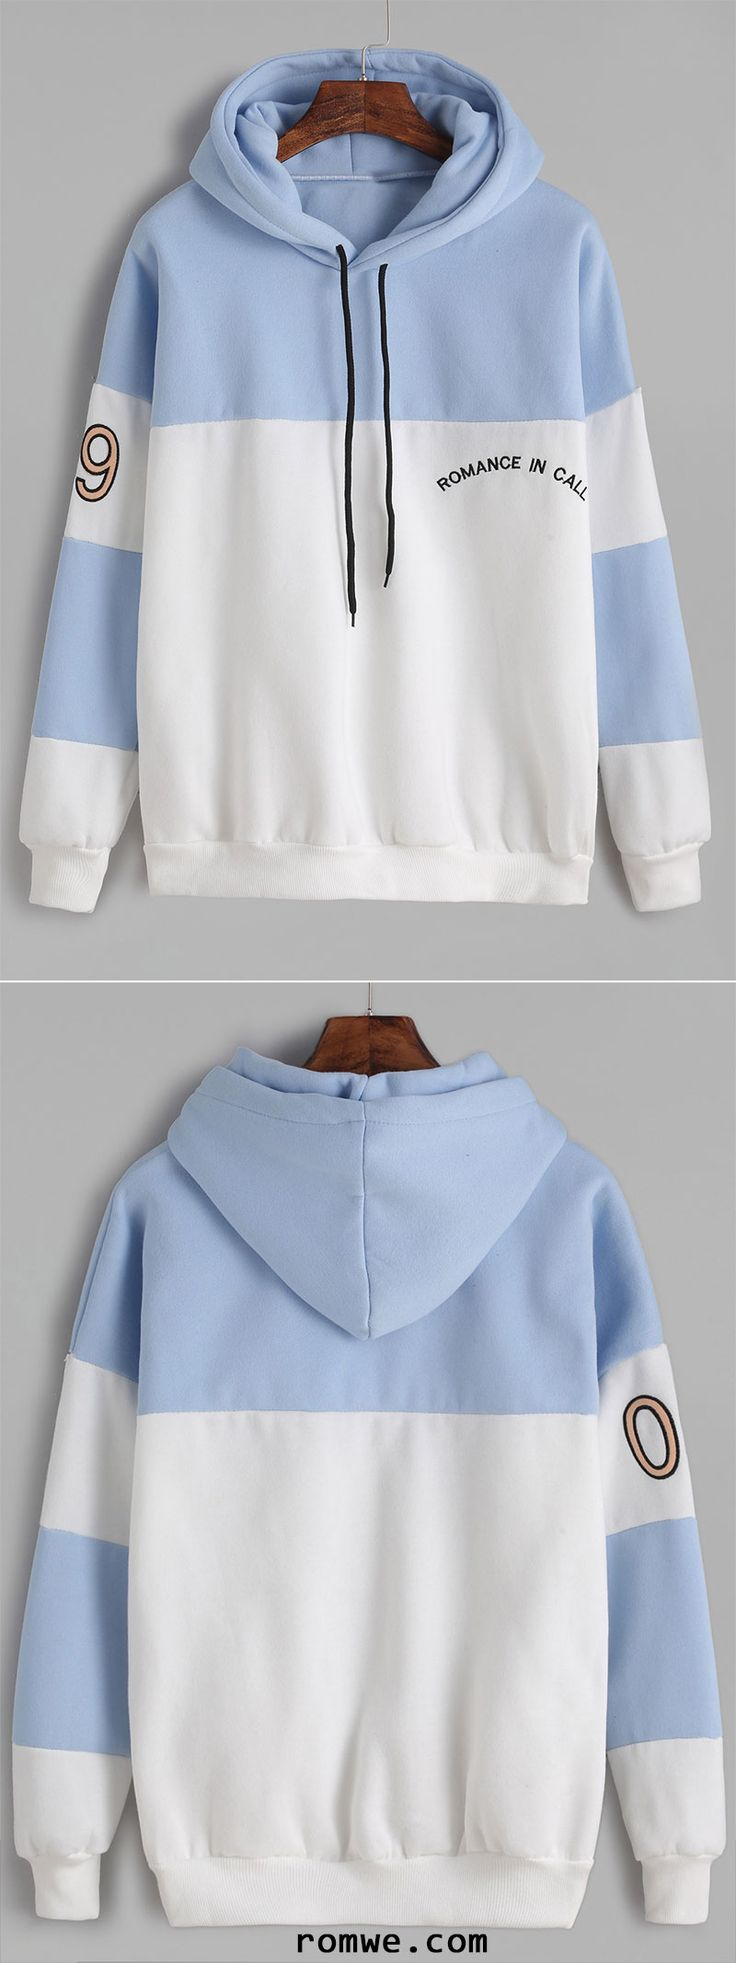 Color Block Number Letter Embroidery Hooded Sweatshirt http://amzn.to/2k2HTMQ